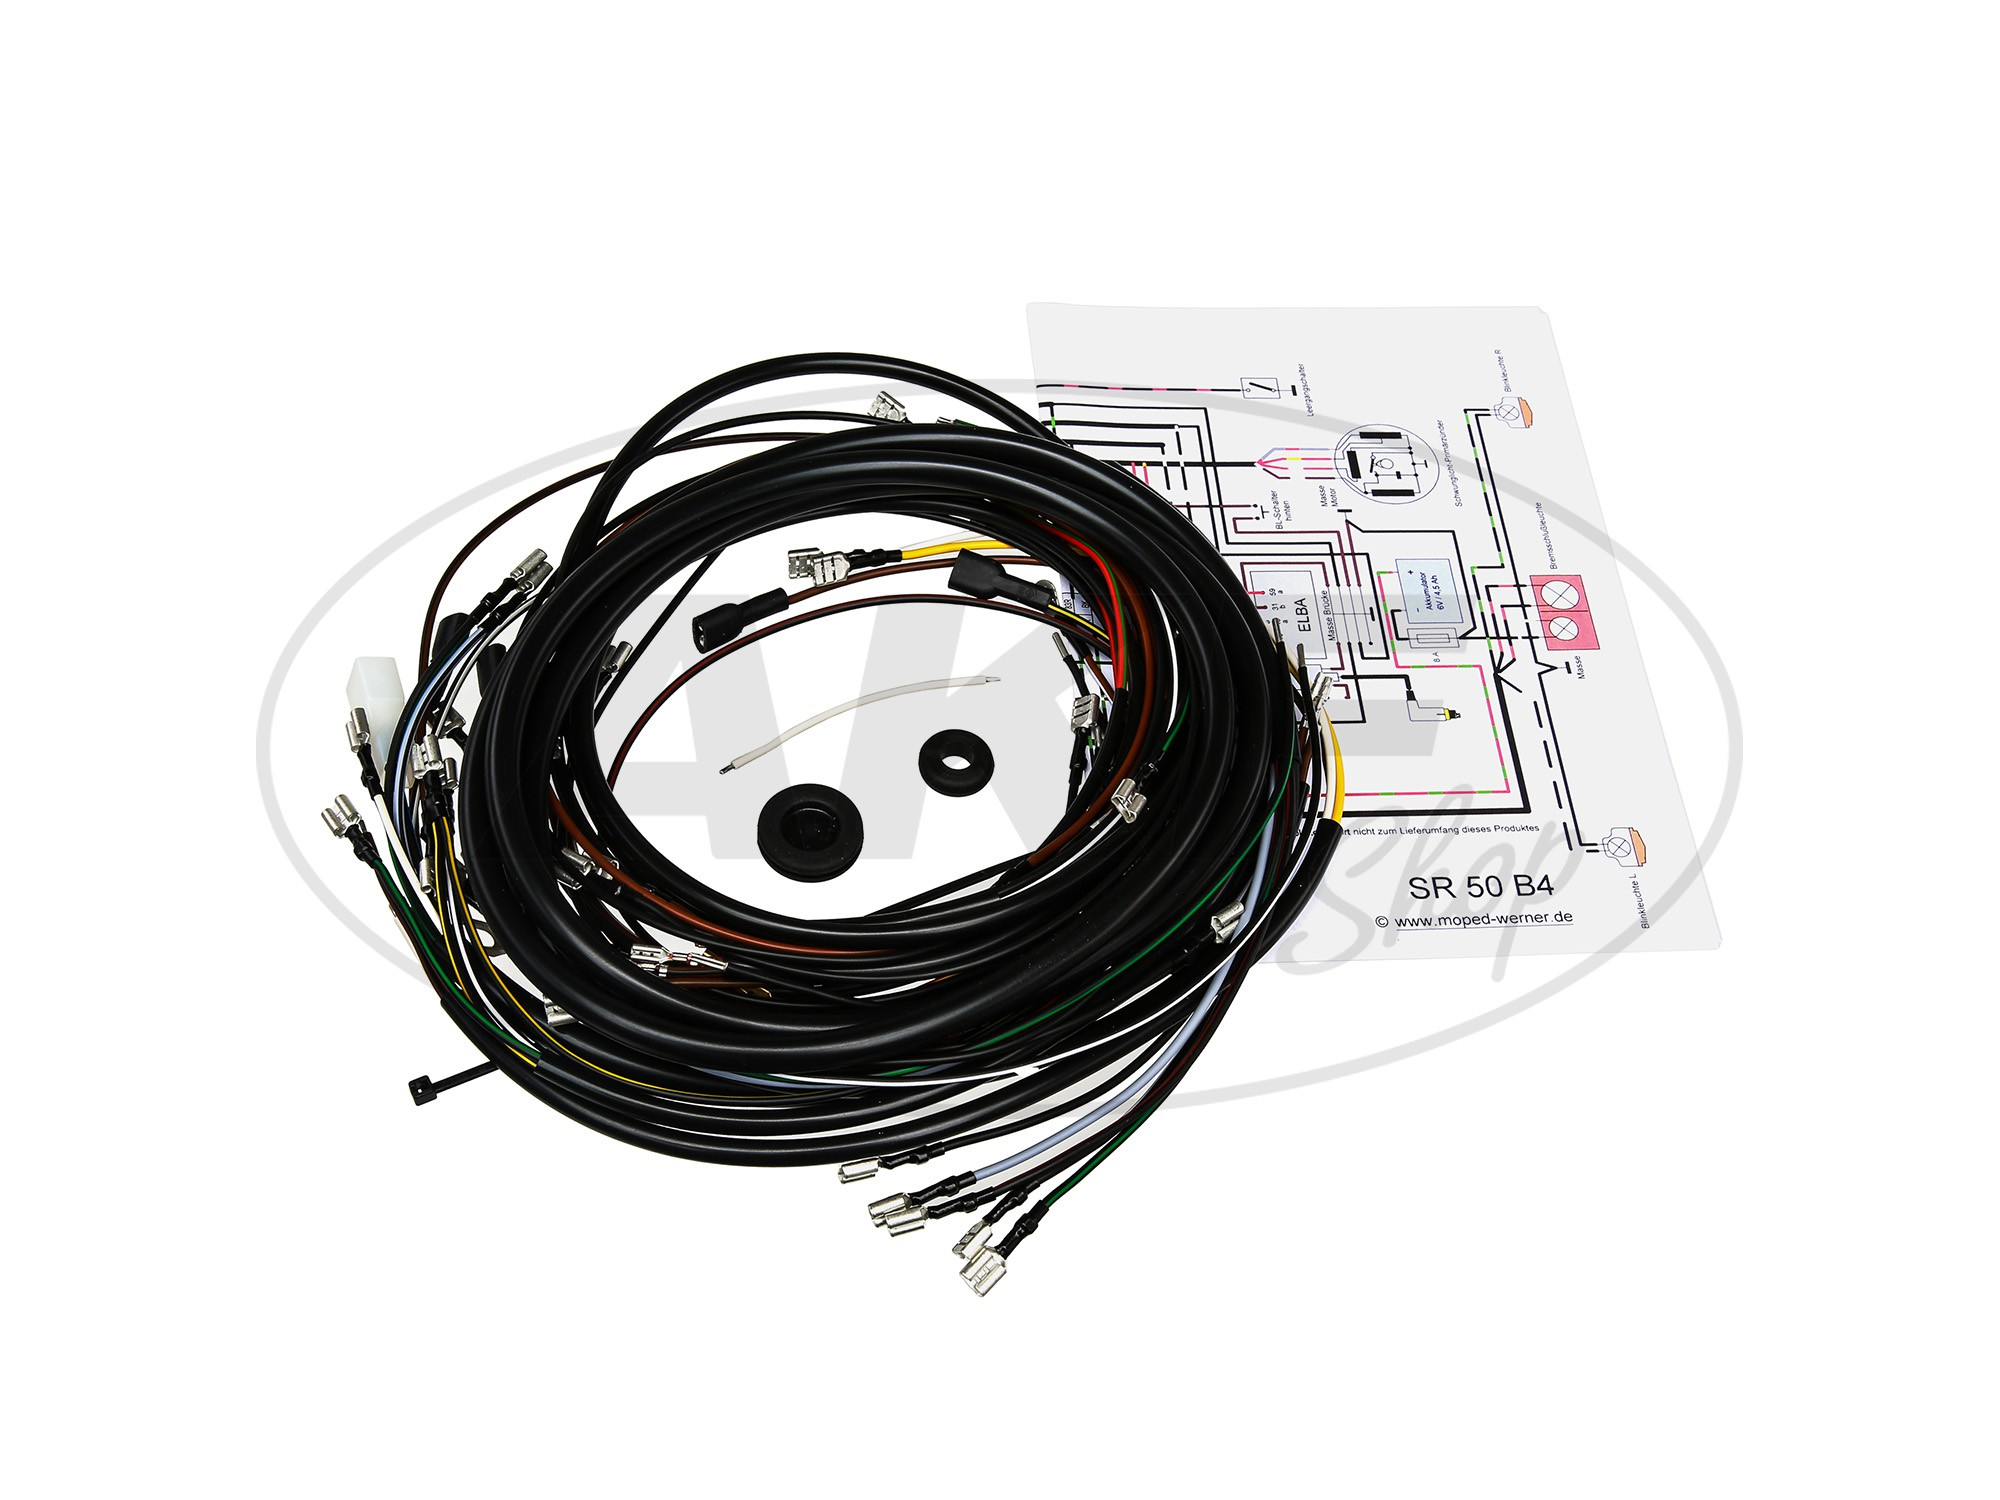 Wiring Harness Sr50 B4 6v Circuit Breaker With Diagram Image 1